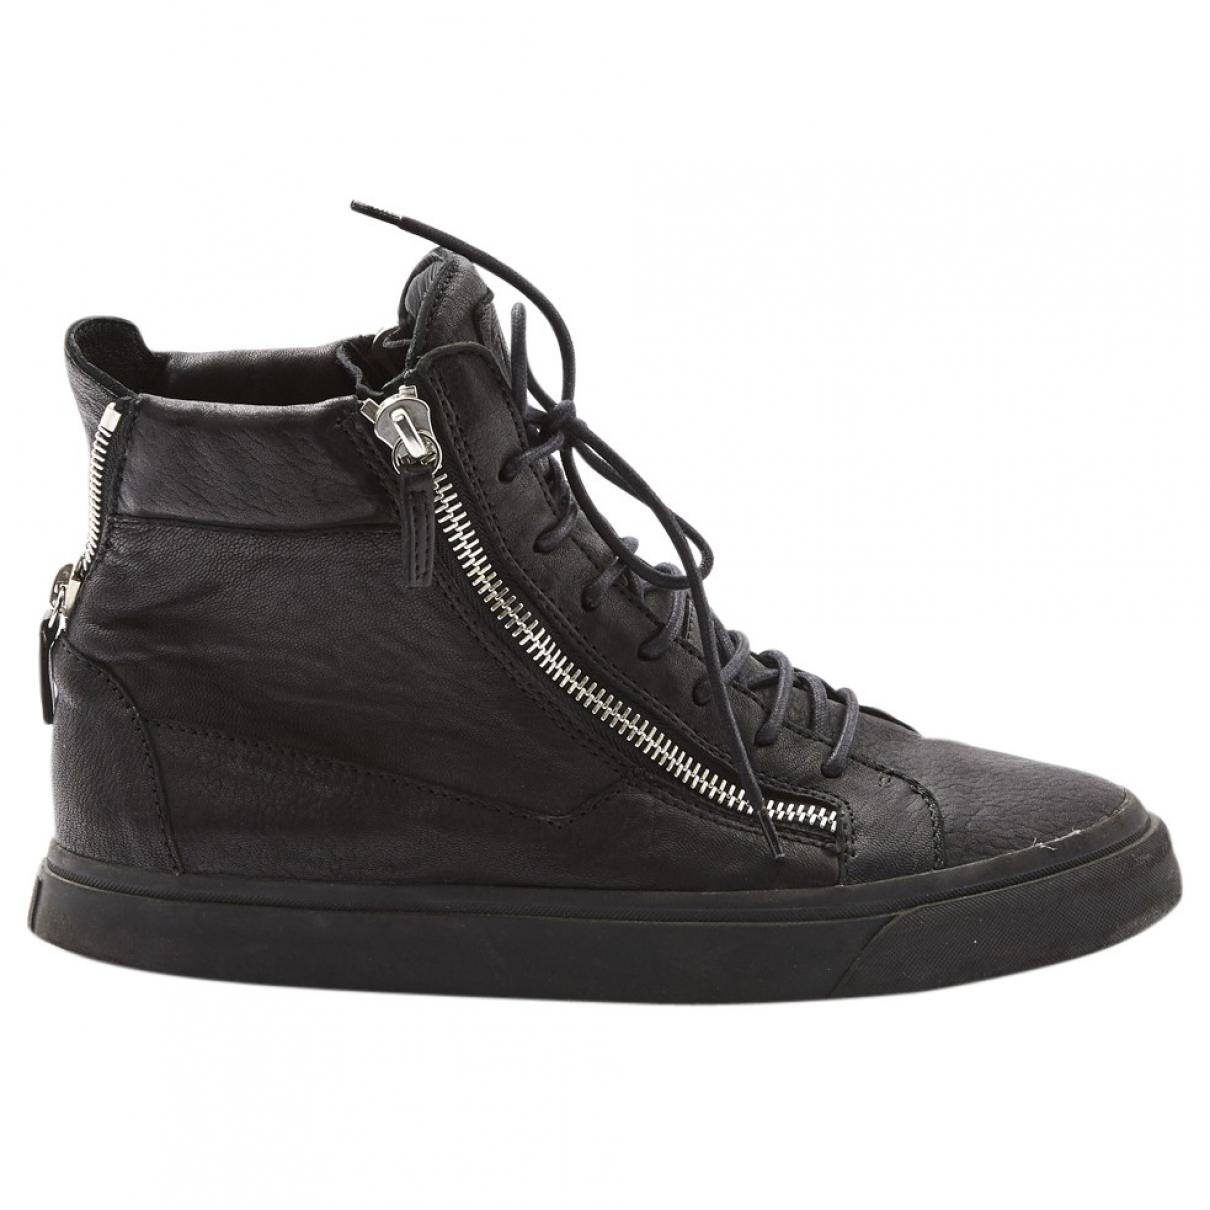 Pre-owned - Leather trainers Giuseppe Zanotti bZcLjC